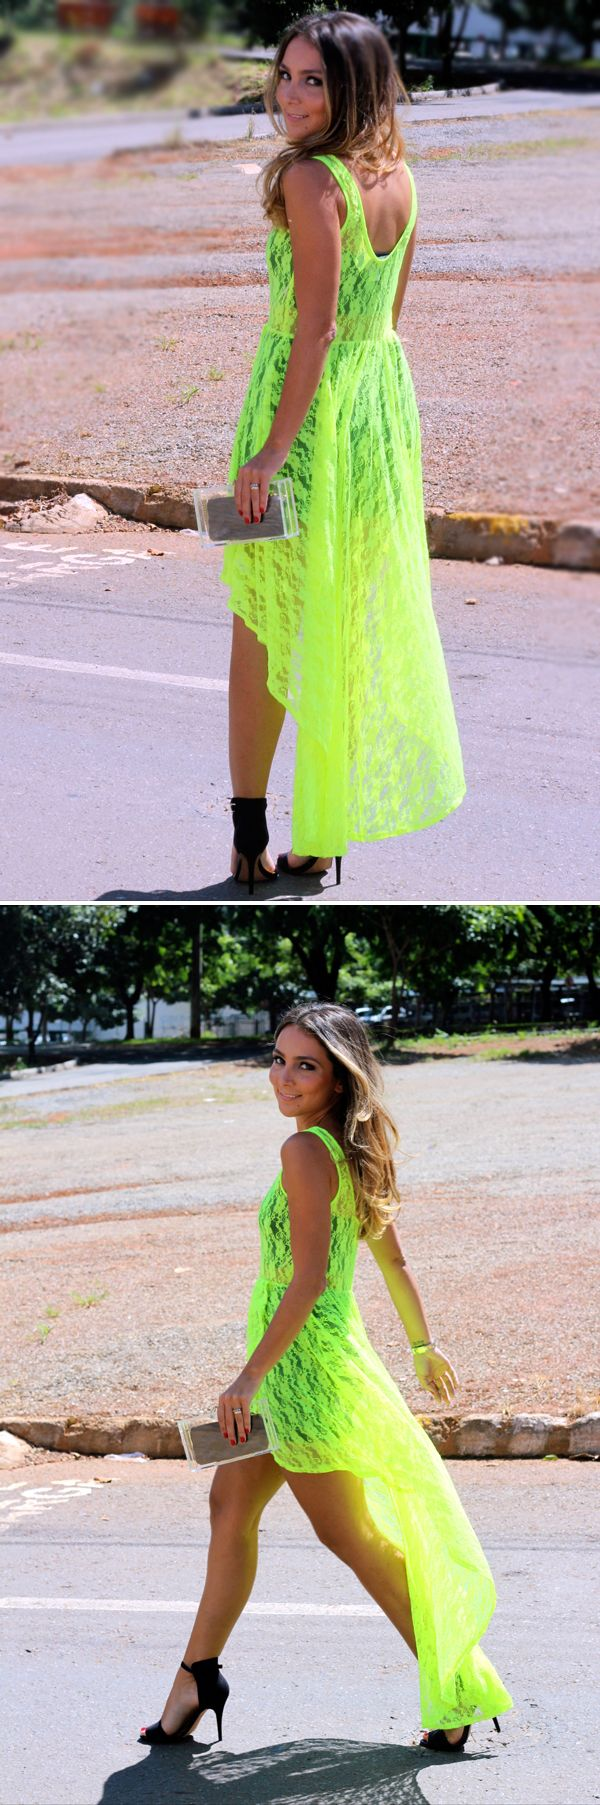 Love the neon high-low!